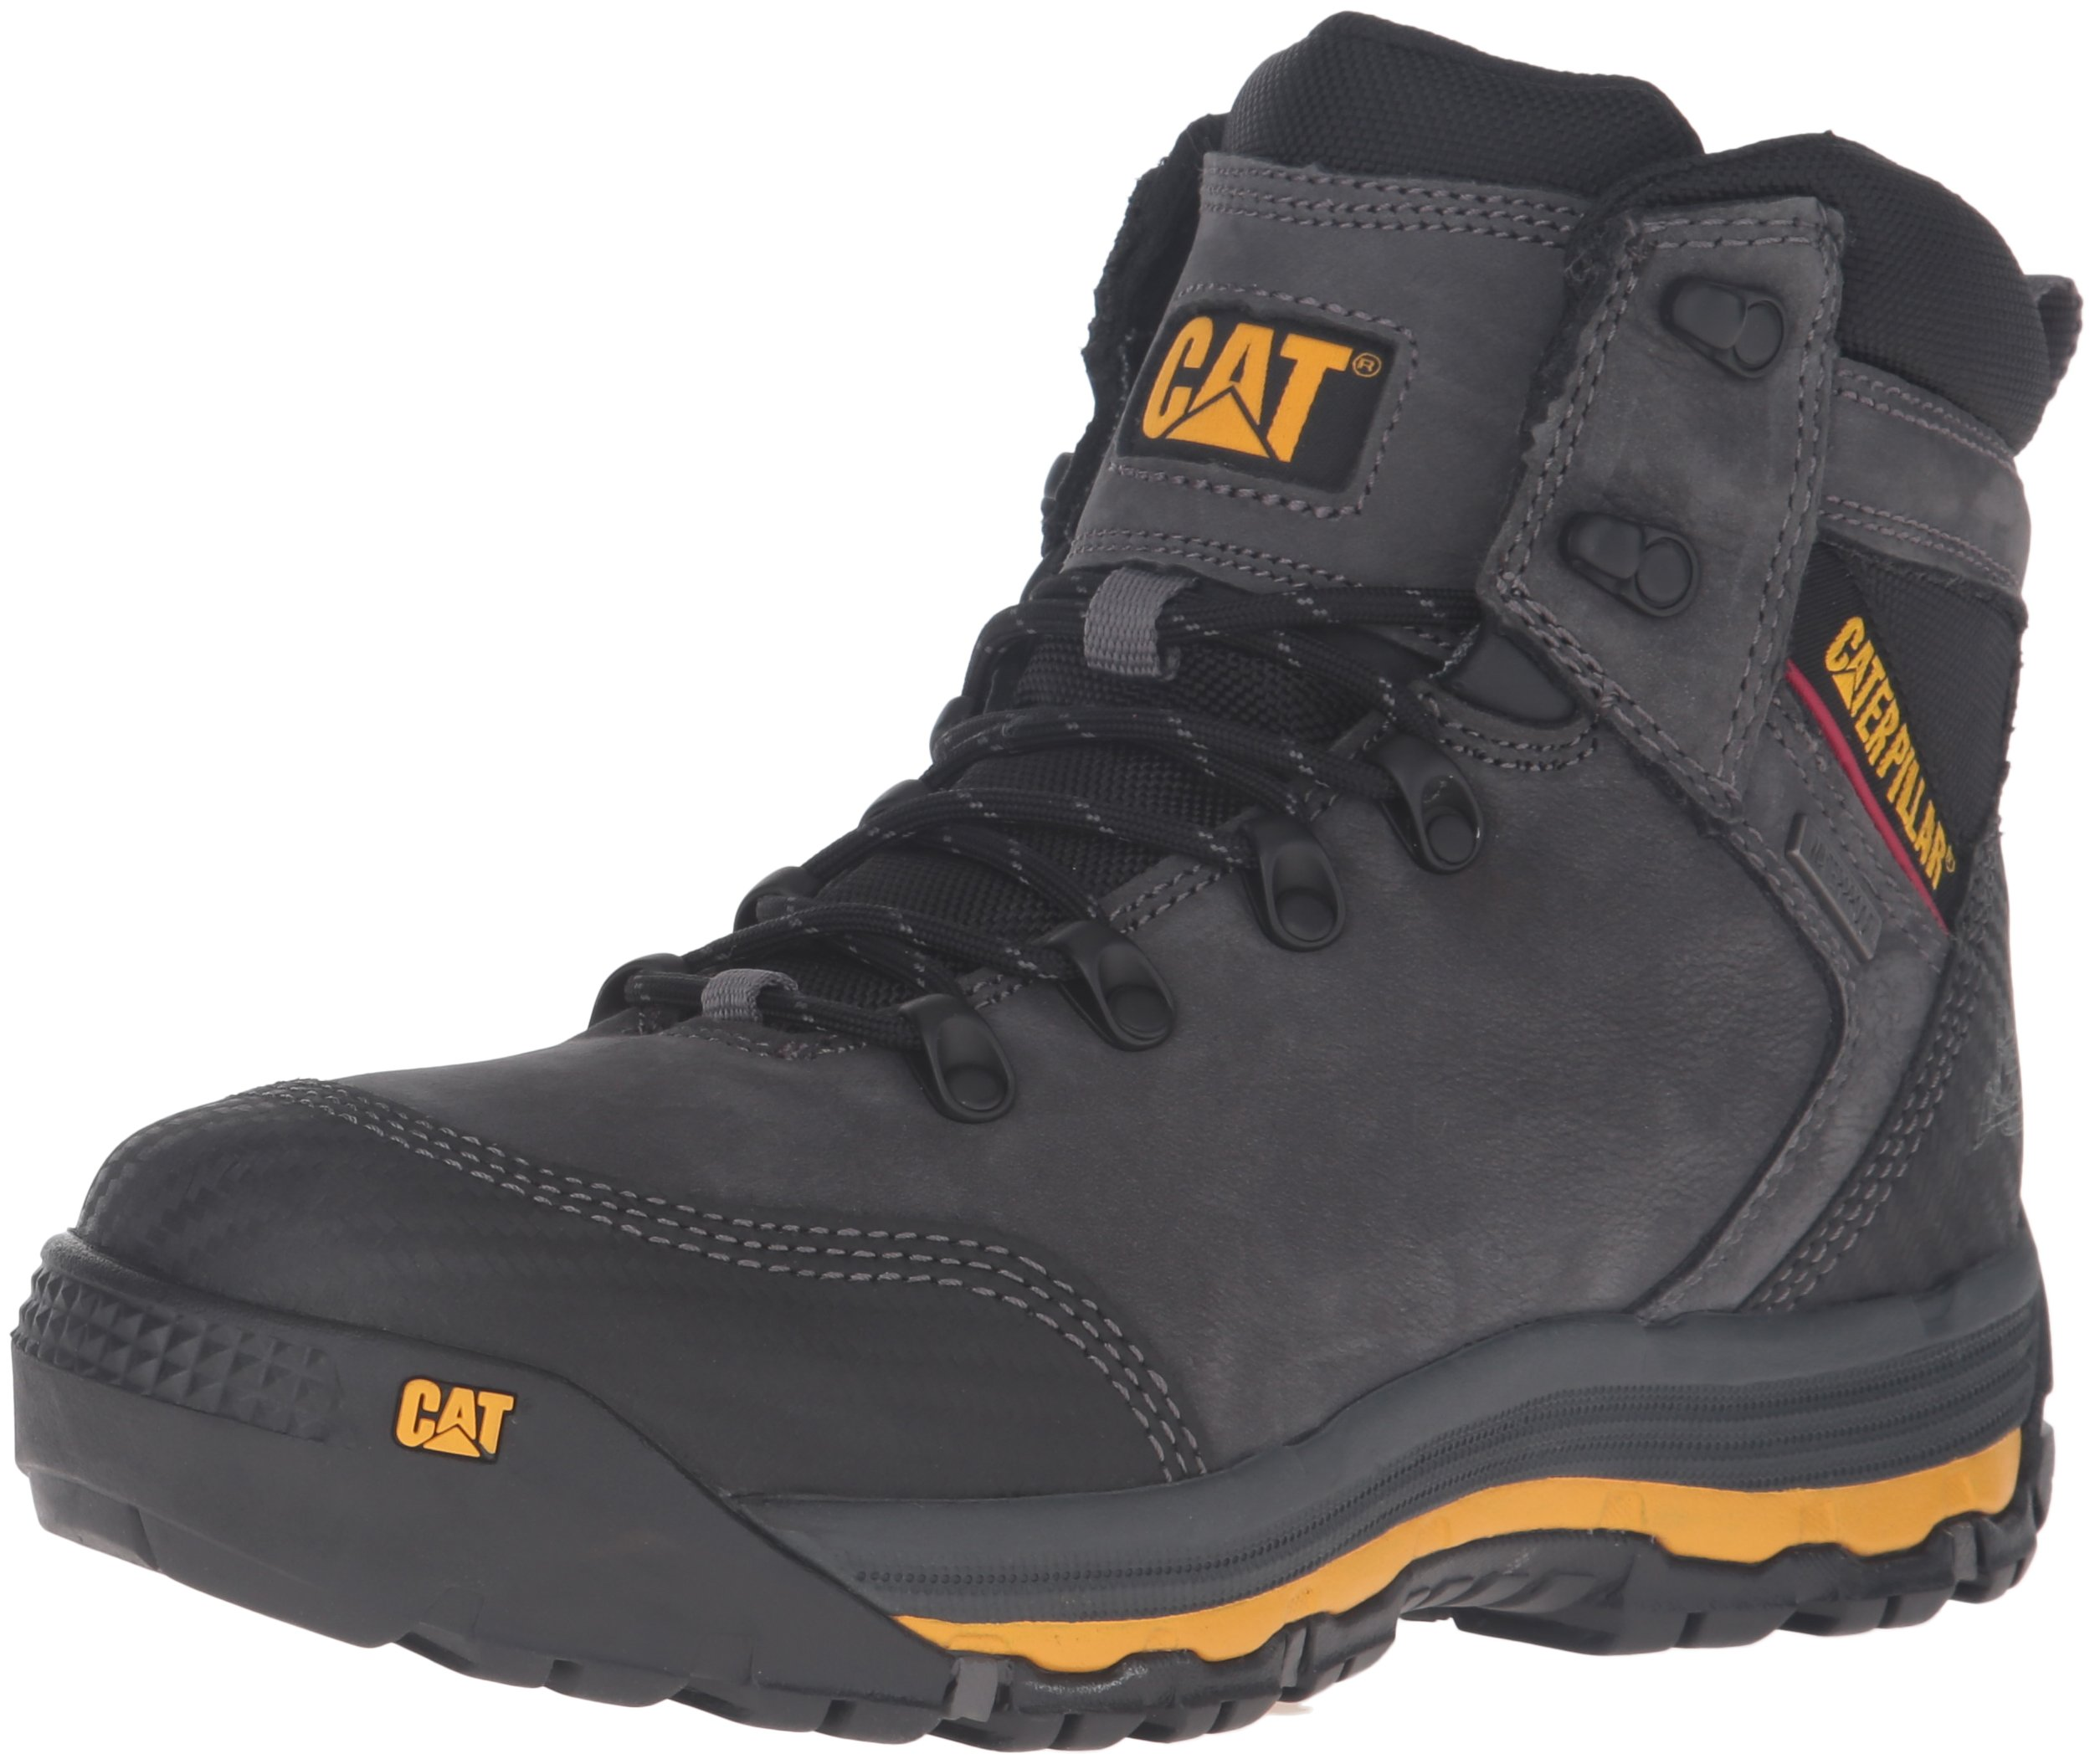 Caterpillar Men's Munising 6'' Waterproof Industrial and Construction Shoe, Dark Shadow, 13 M US by Caterpillar (Image #1)